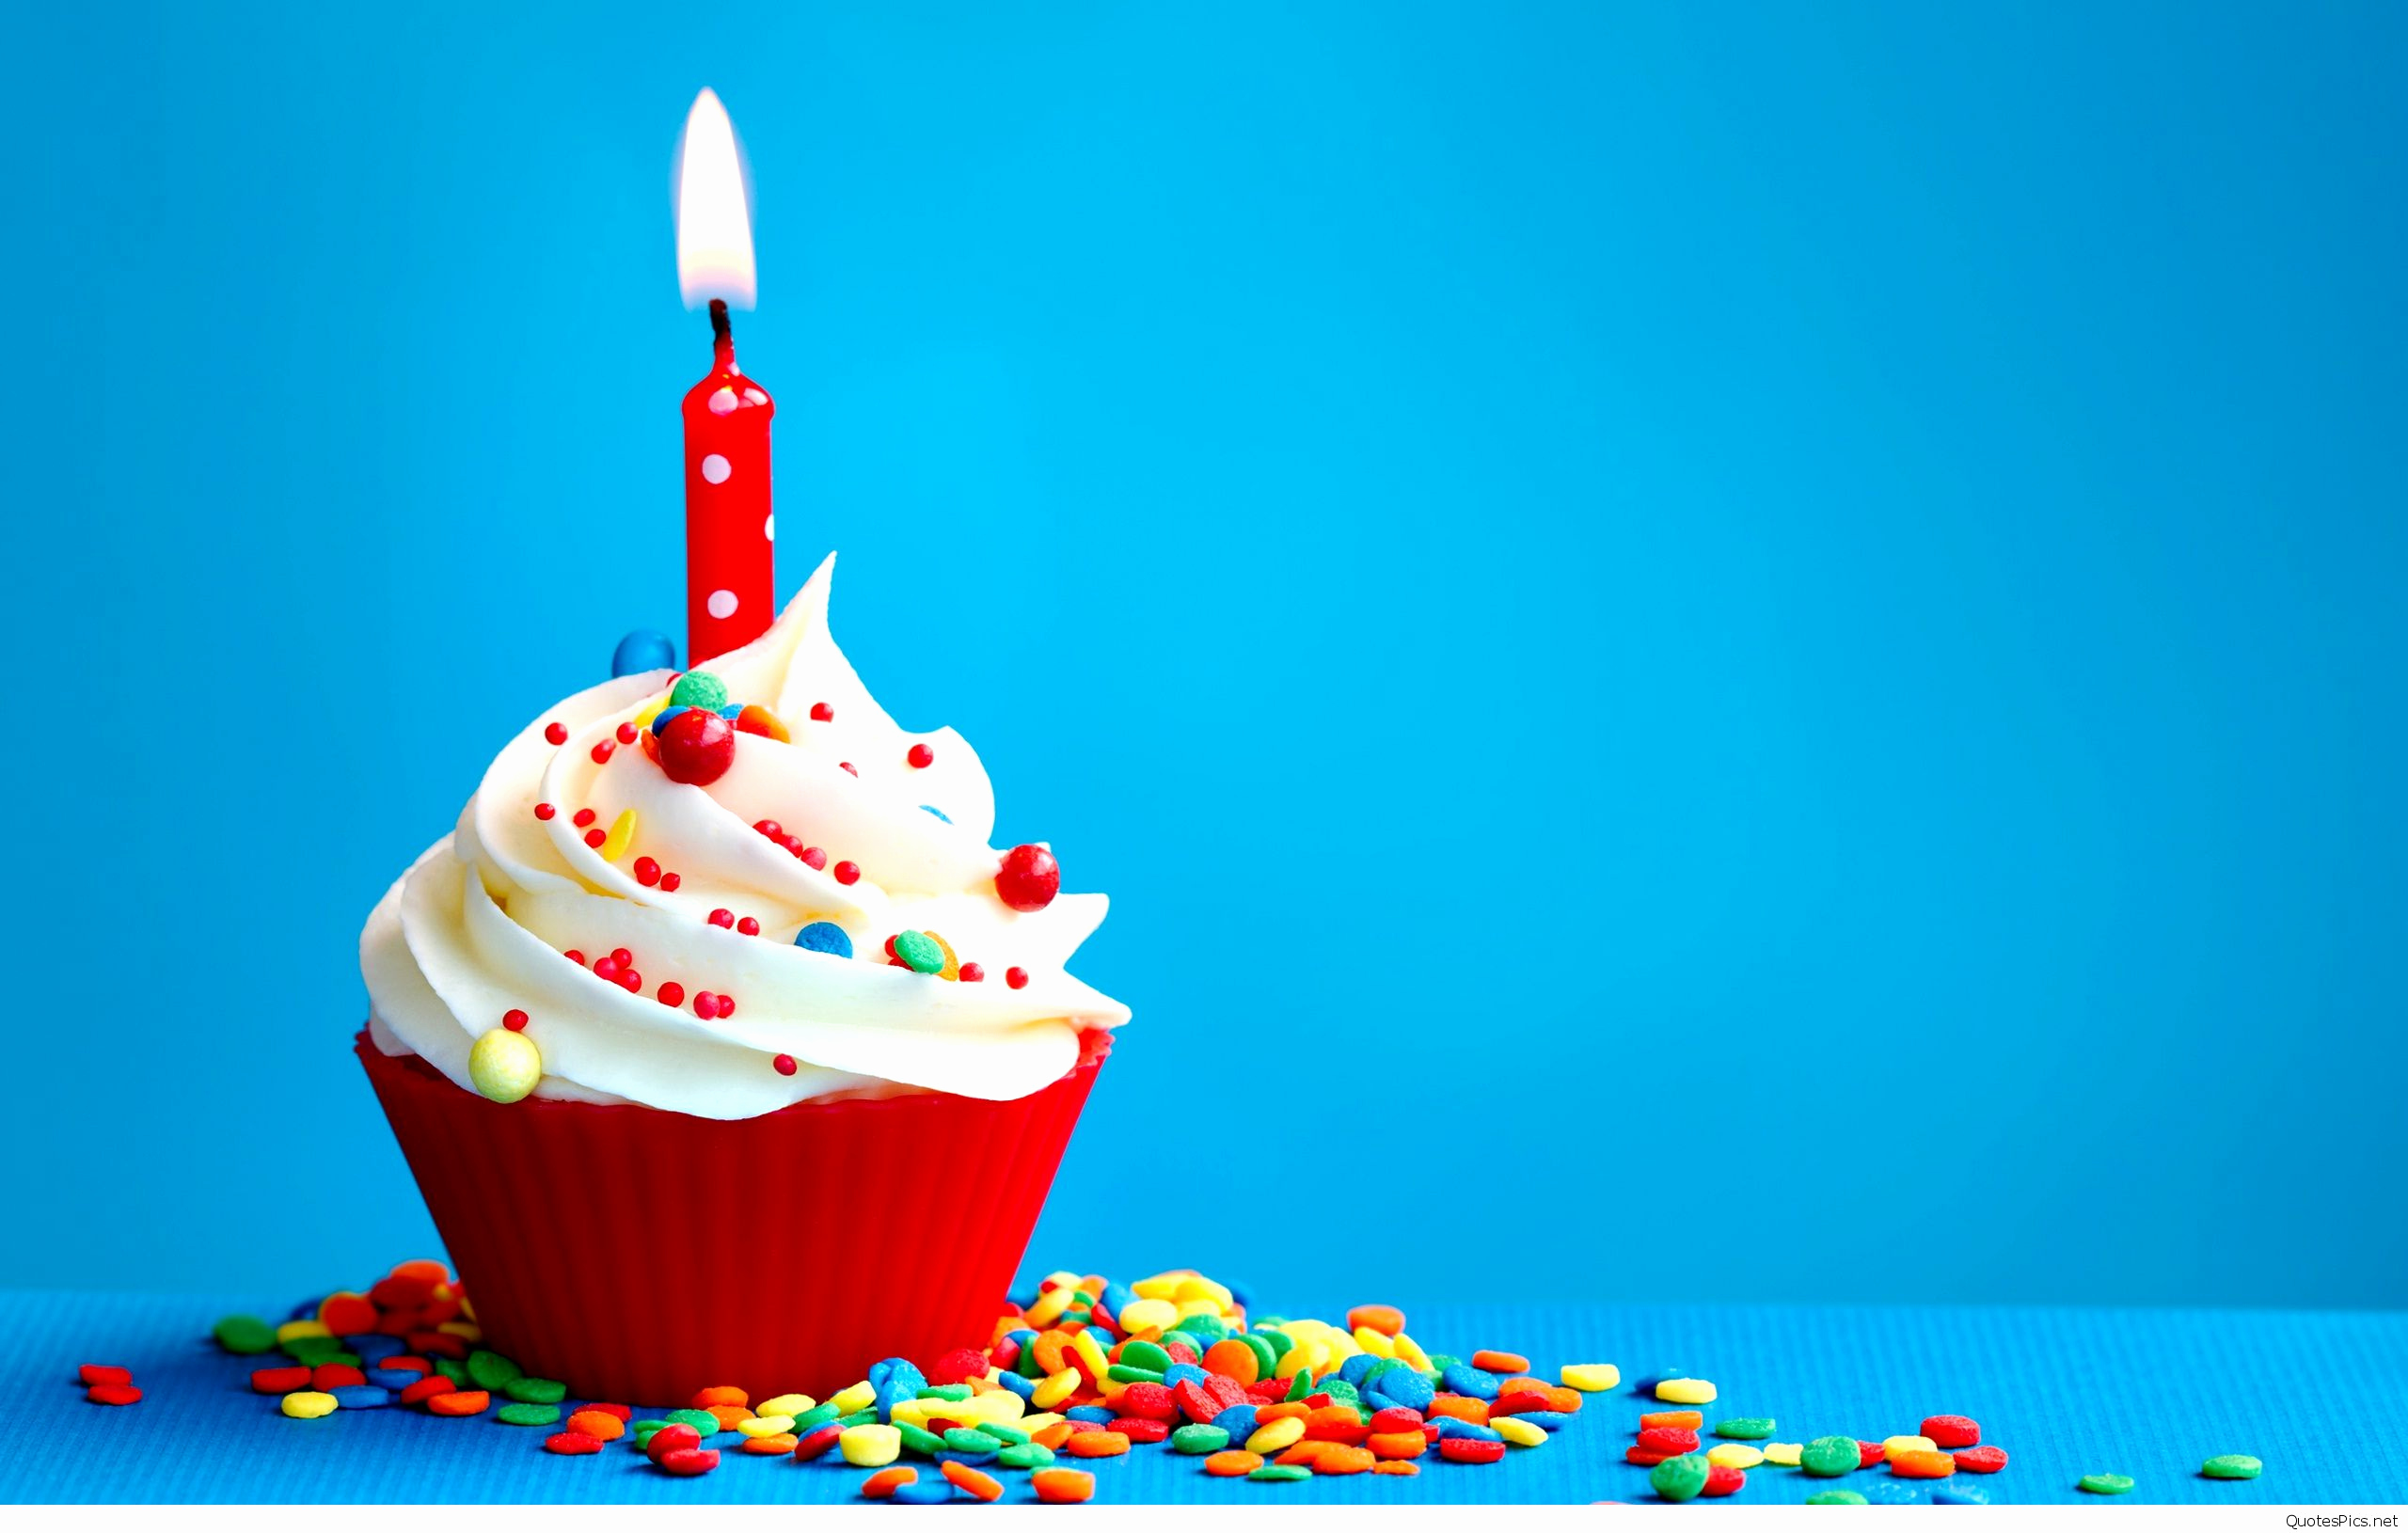 Happy Bday Wallpapers Free Best Of Amazing Birthday Wishes Cards and Wallpapers Hd